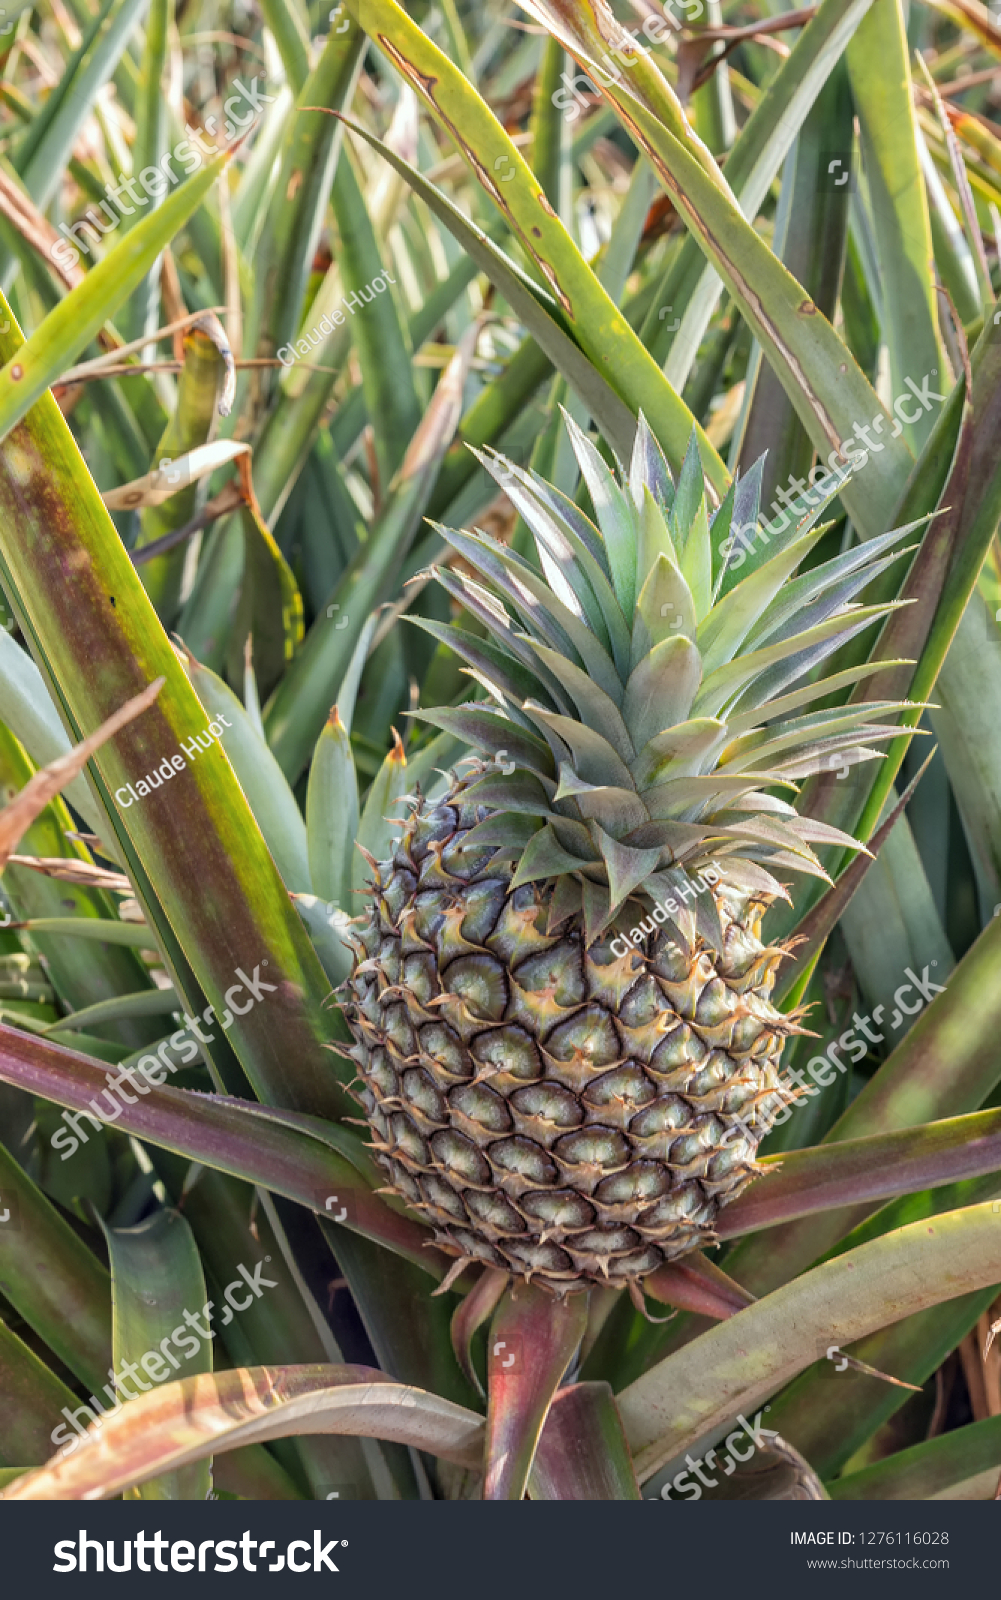 Juicy Sweet Cayenne pineapple (Ananas comosus) growing in a field on a farm in South Africa.